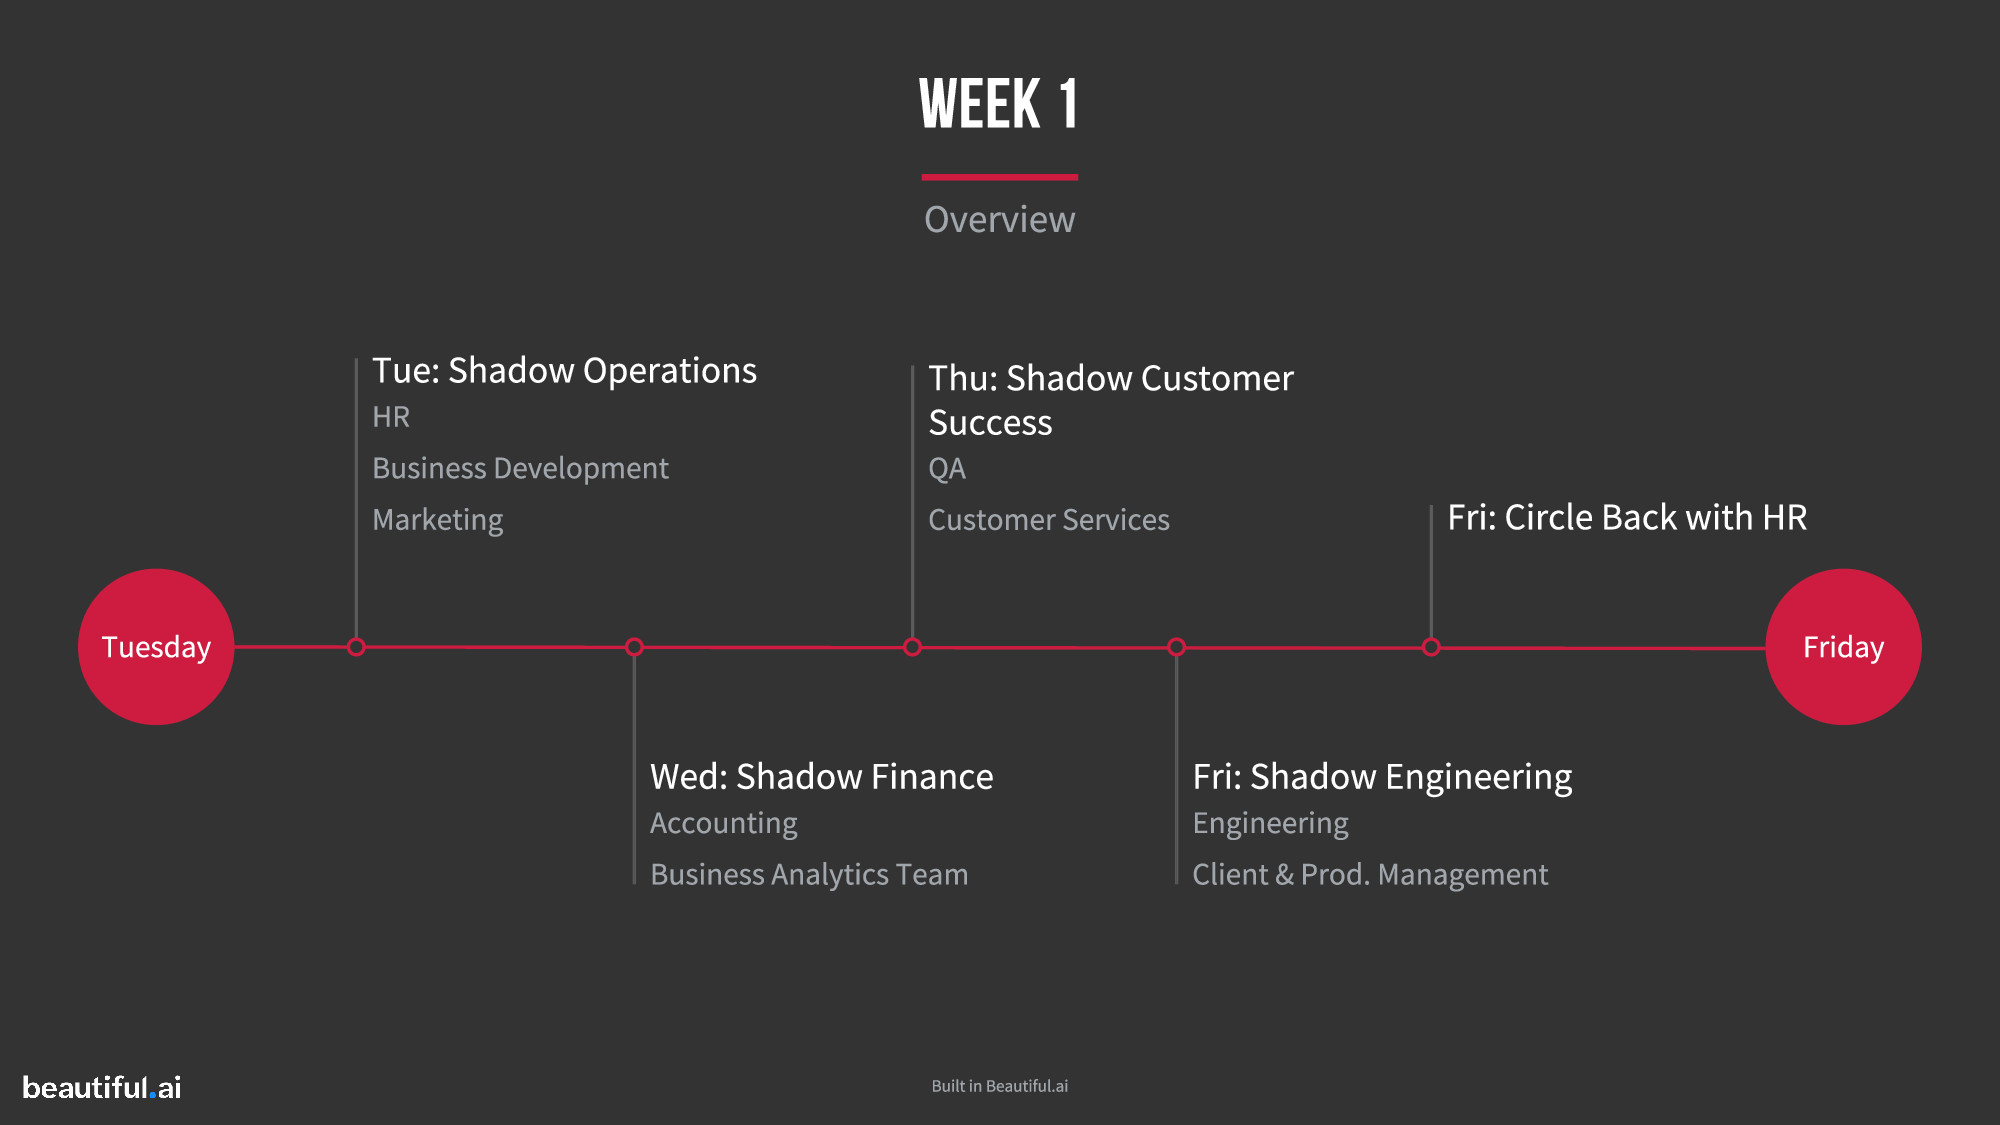 WEEK OVERVIEW